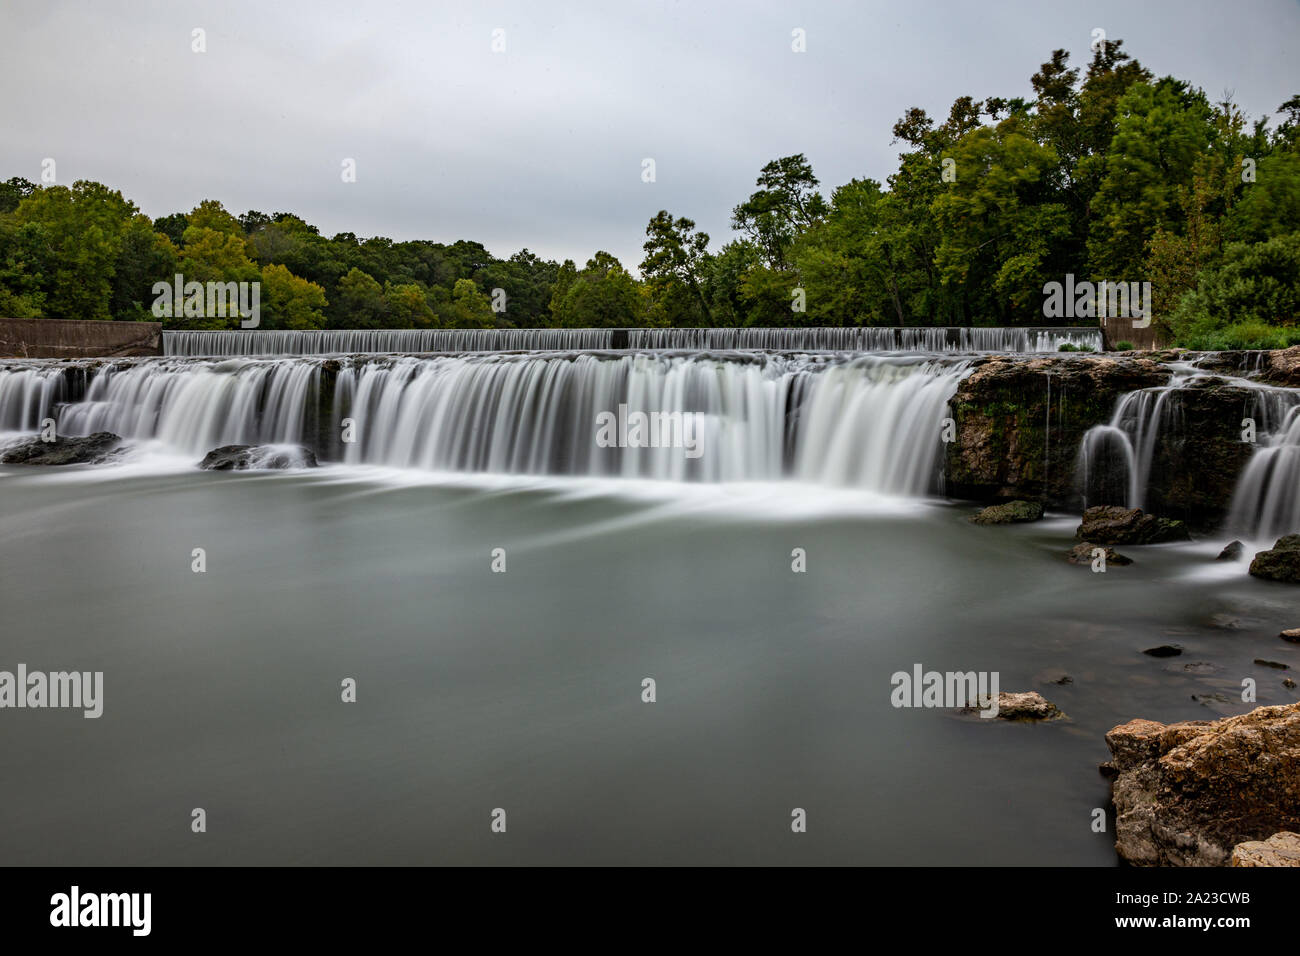 Grand Falls waterfall in Joplin, Missouri Stock Photo